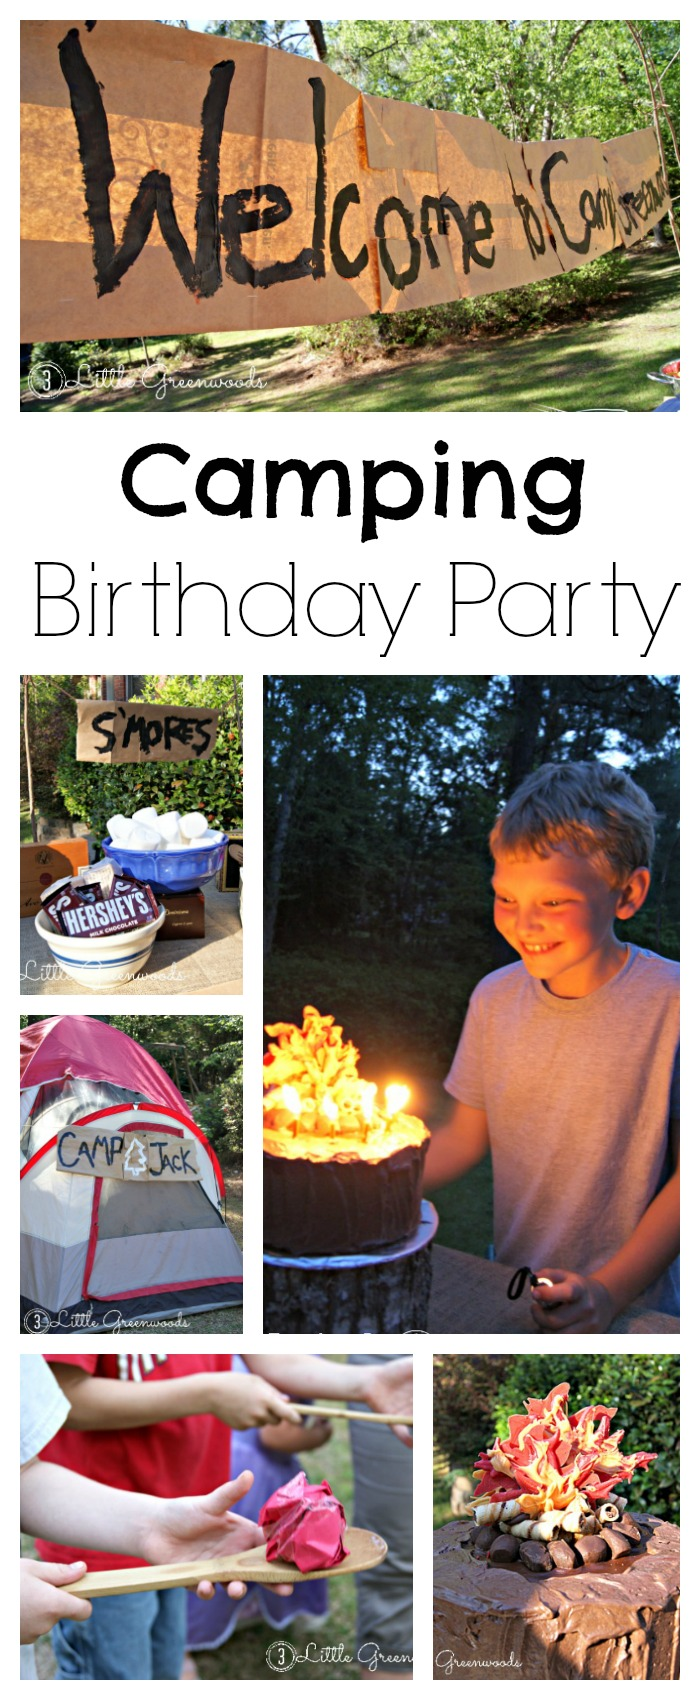 Camping Birthday Party Fun